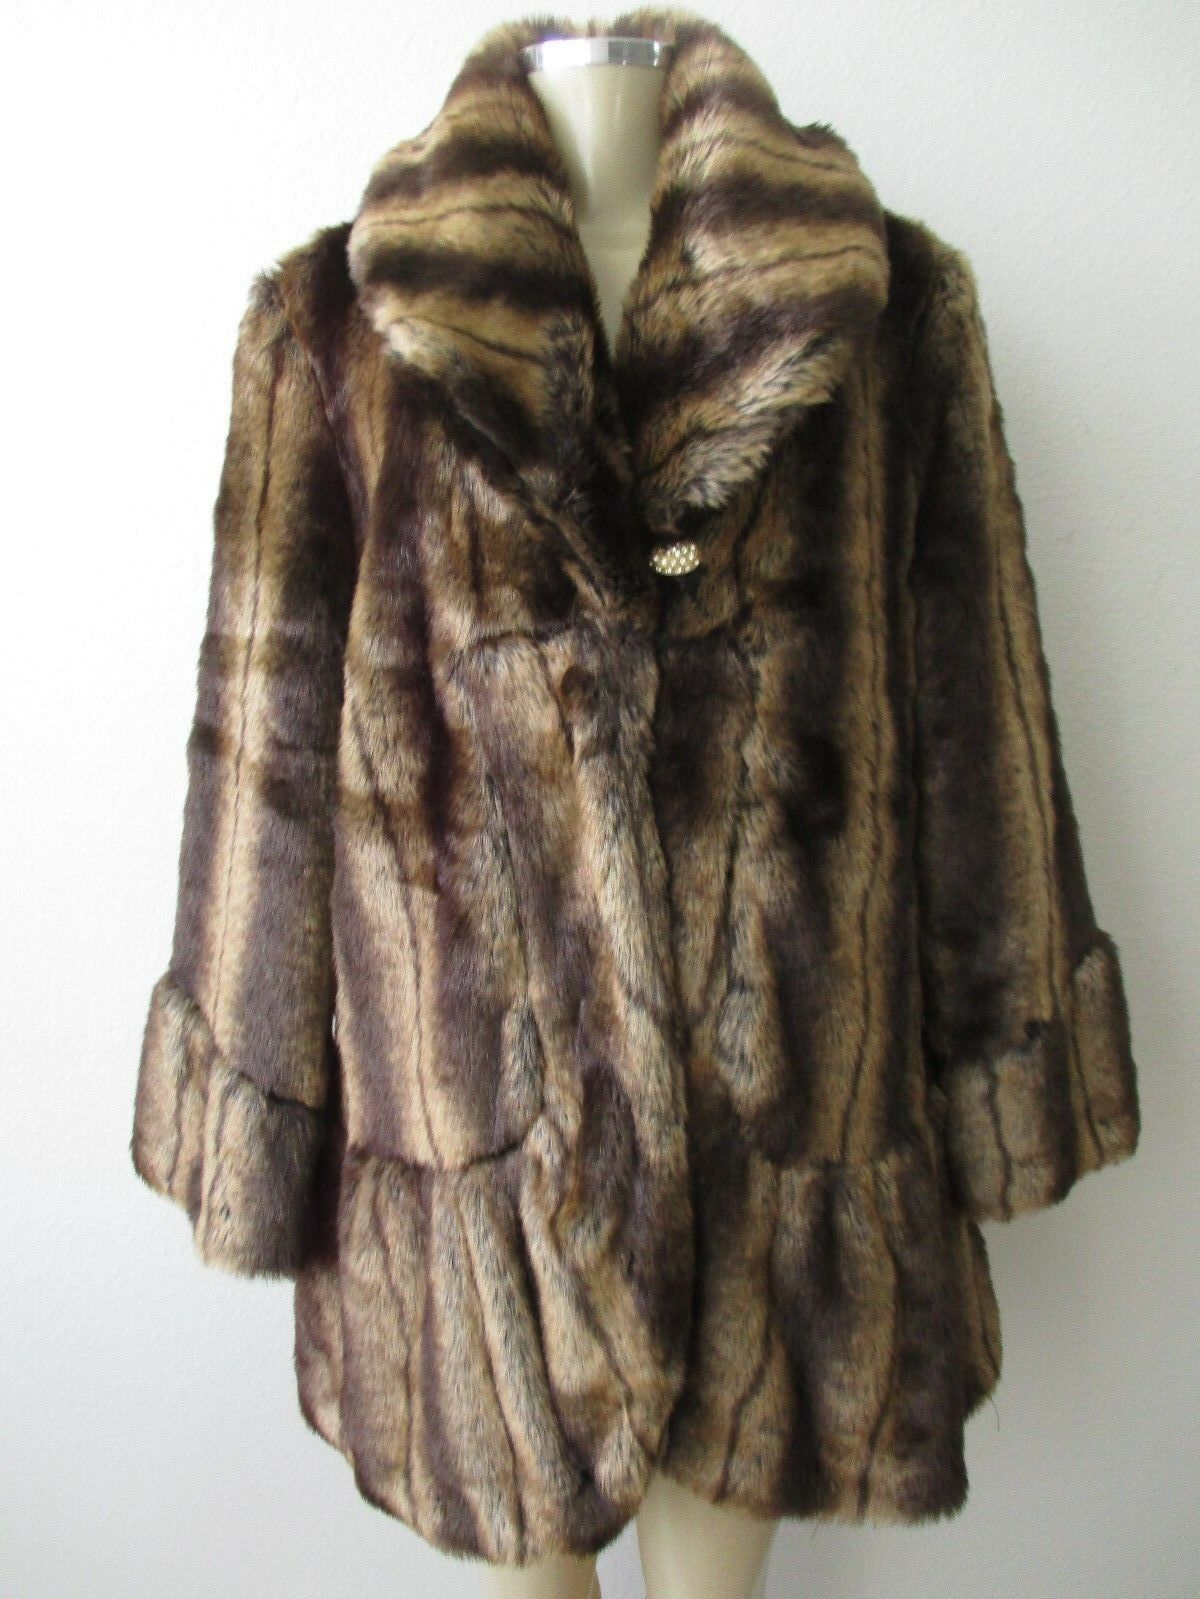 IMAN BROWN MIX PELTED FAUX FUR SWING COAT SIZE M - NWT